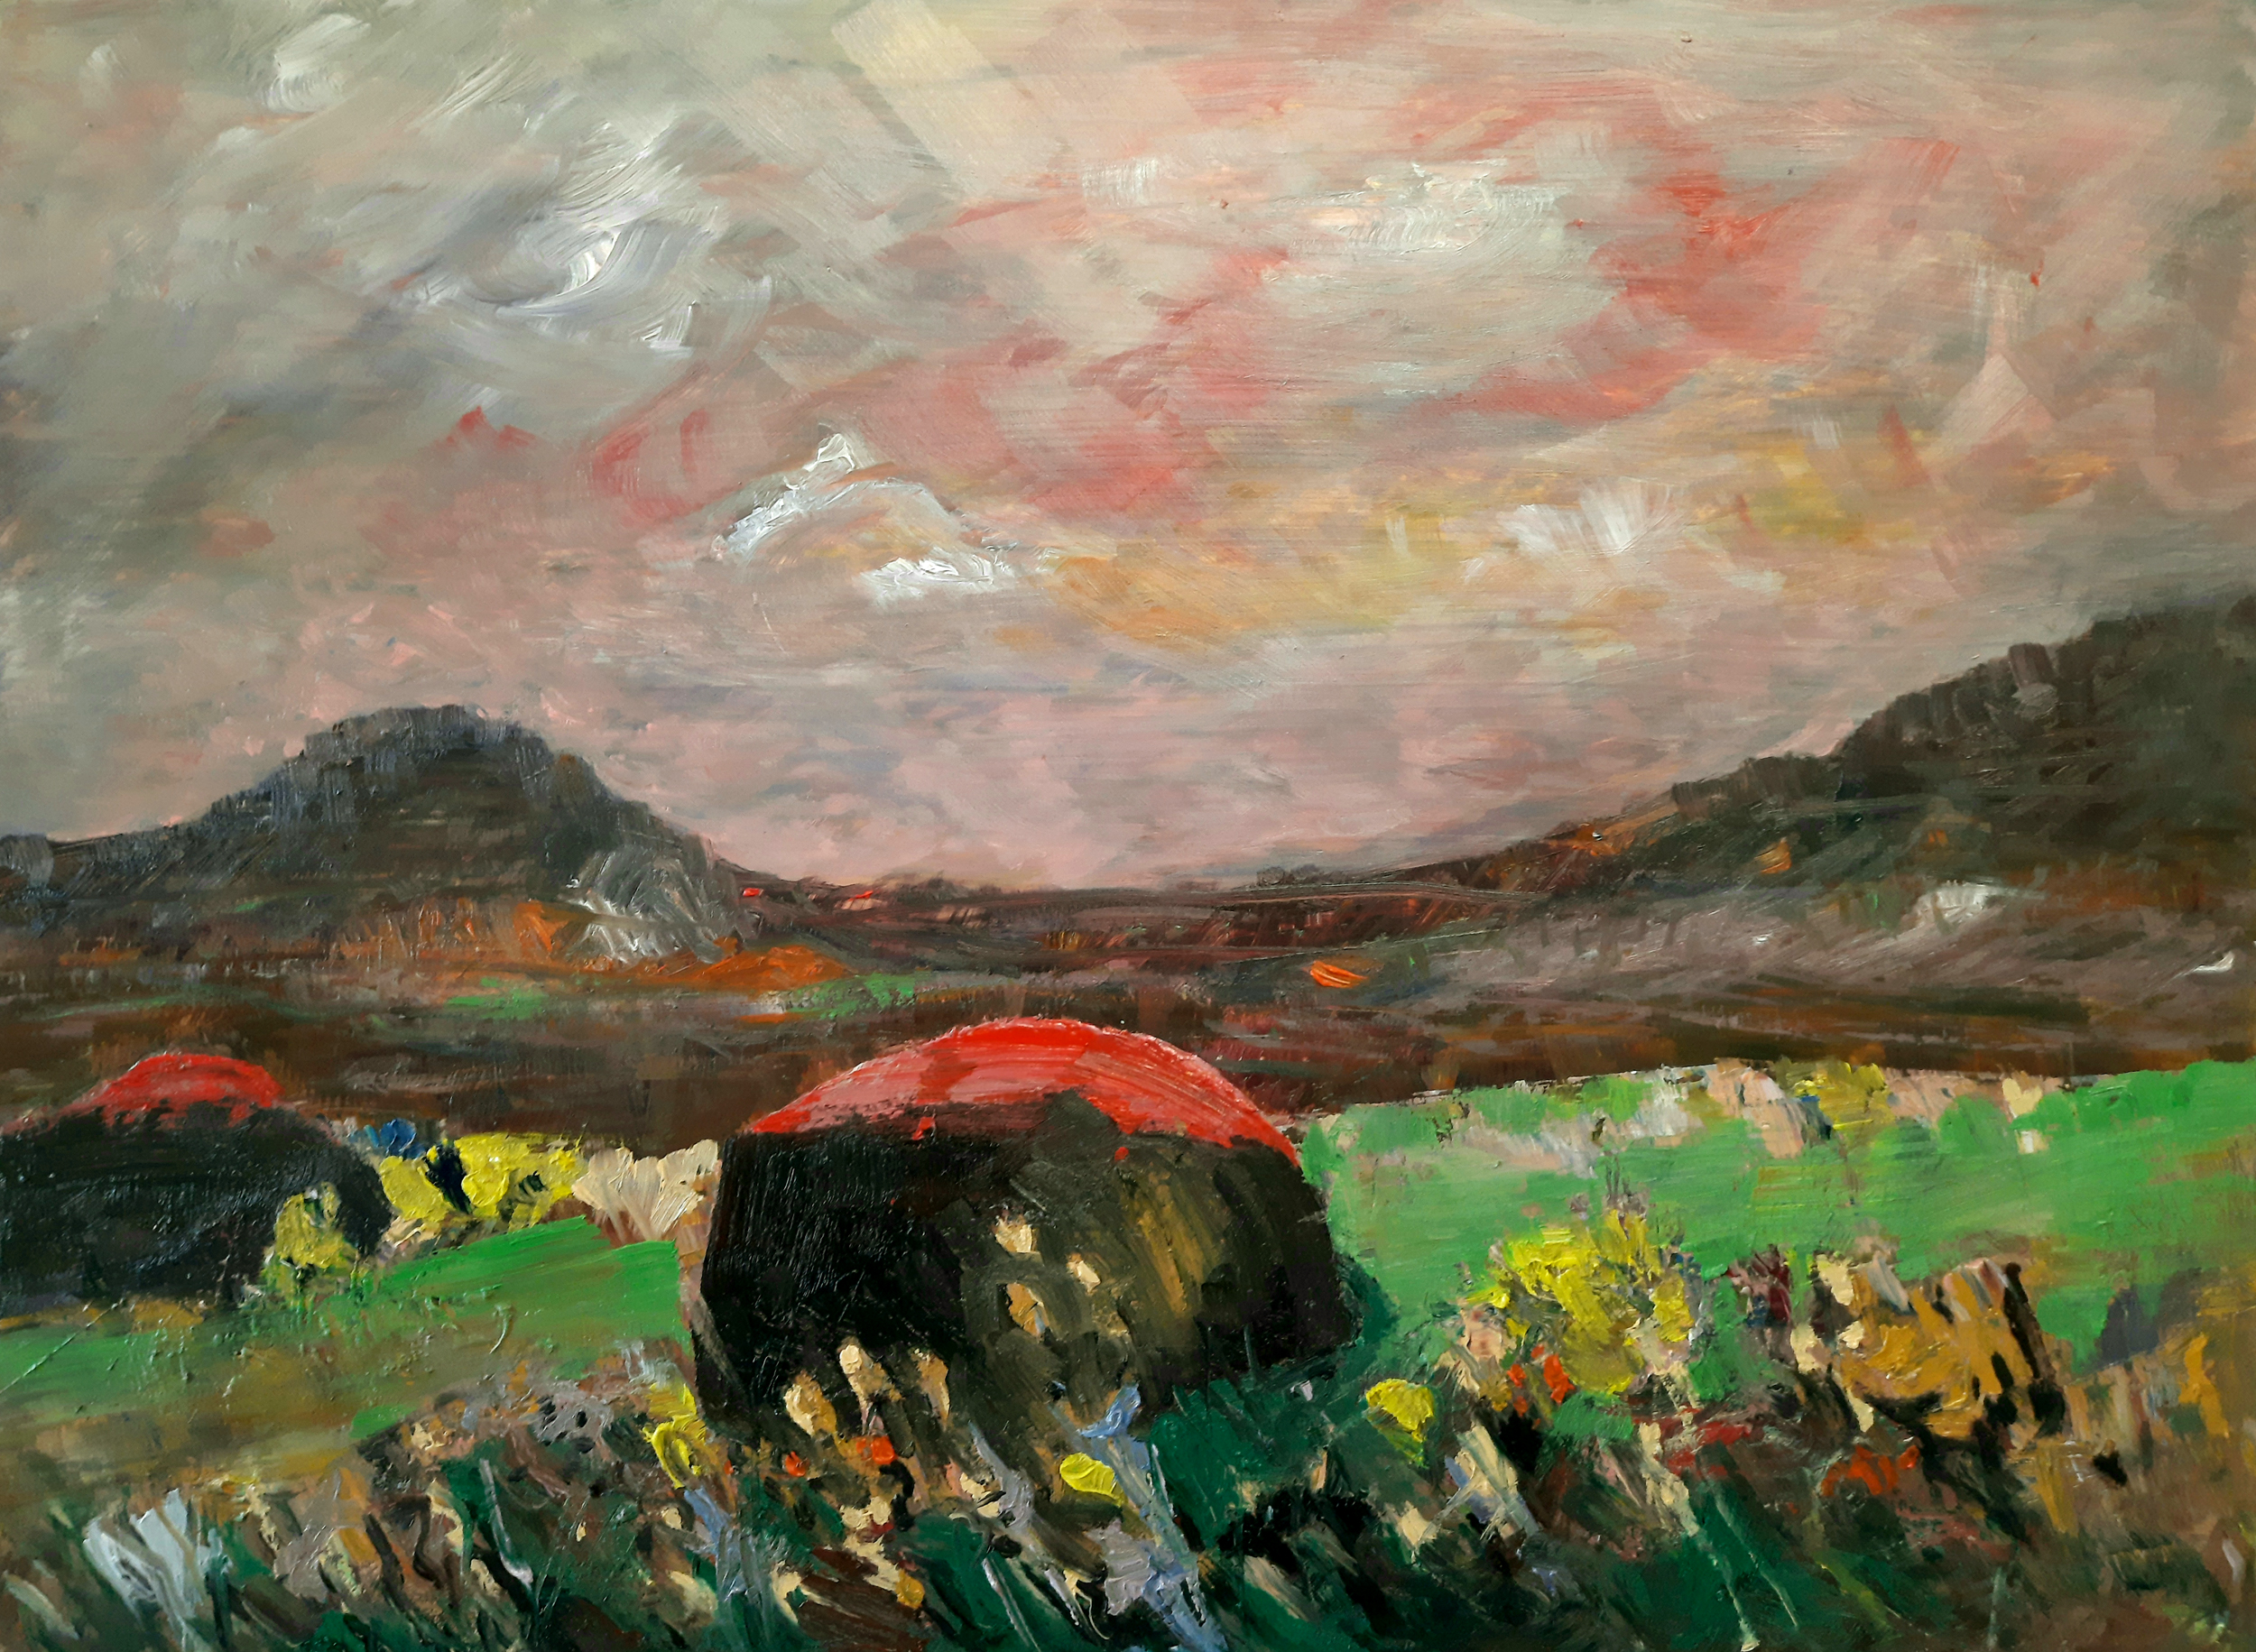 Oil Paintings by Richard Taylor. A landscape inspired by the moorland in the Peak District National Park in Derbyshire, United Kingdom. Forna dresses the foreground in bright greens, yellows and purple colours with blues and reds too. Two red-tipped rocks jut out and mirror the horizon, which depicts two escarpments or tors in muted brown colours. The rest of the image is a sky scape in greys, pinks, reds and yellows.